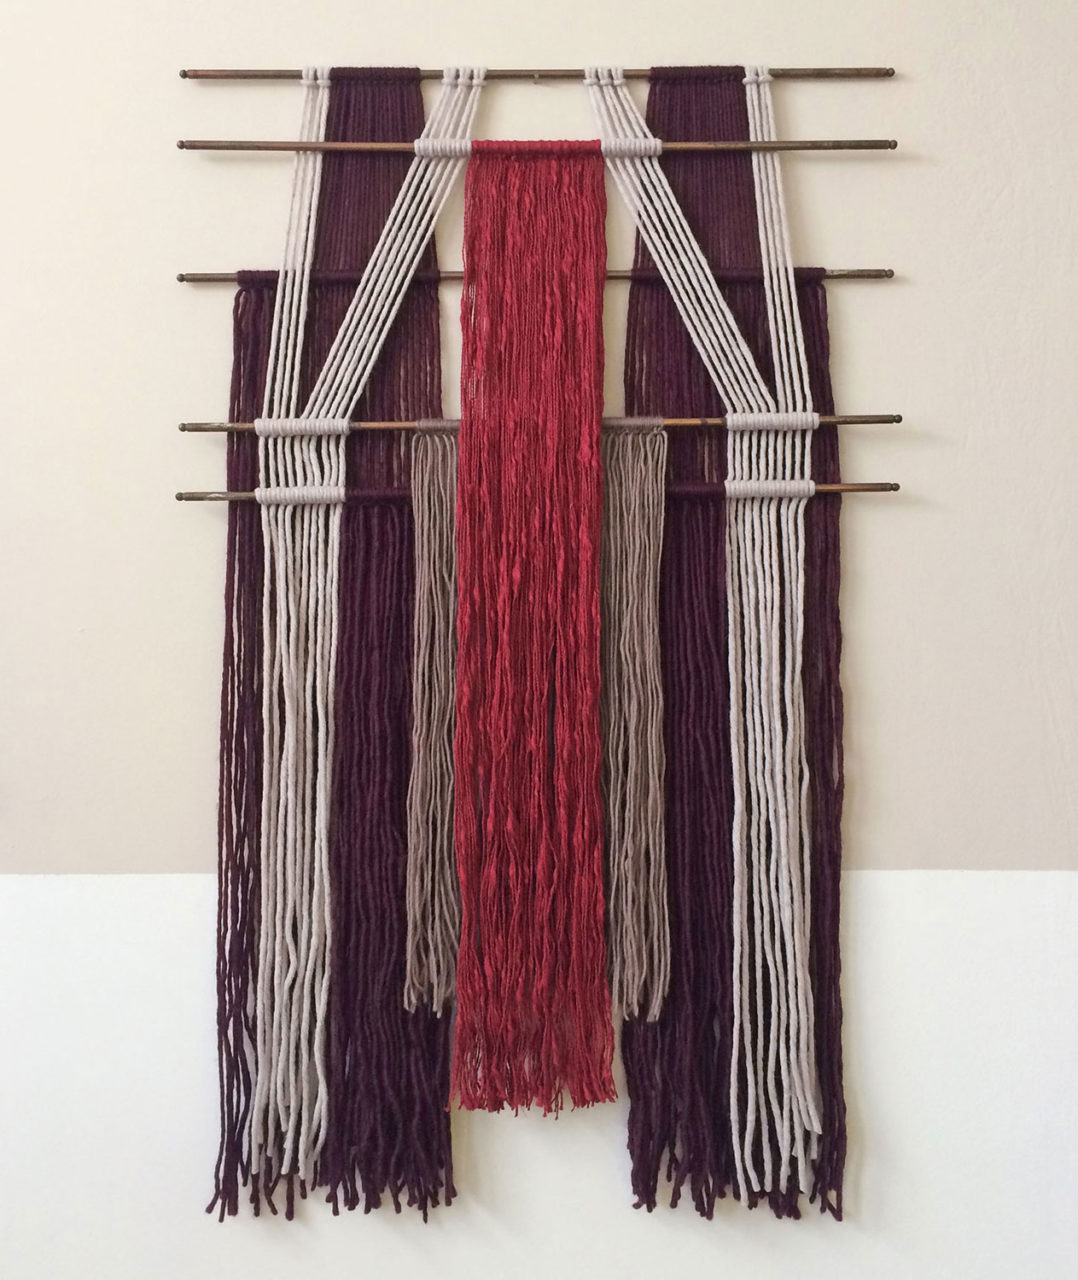 macrame_wall_hanging_stair_rods_2_8